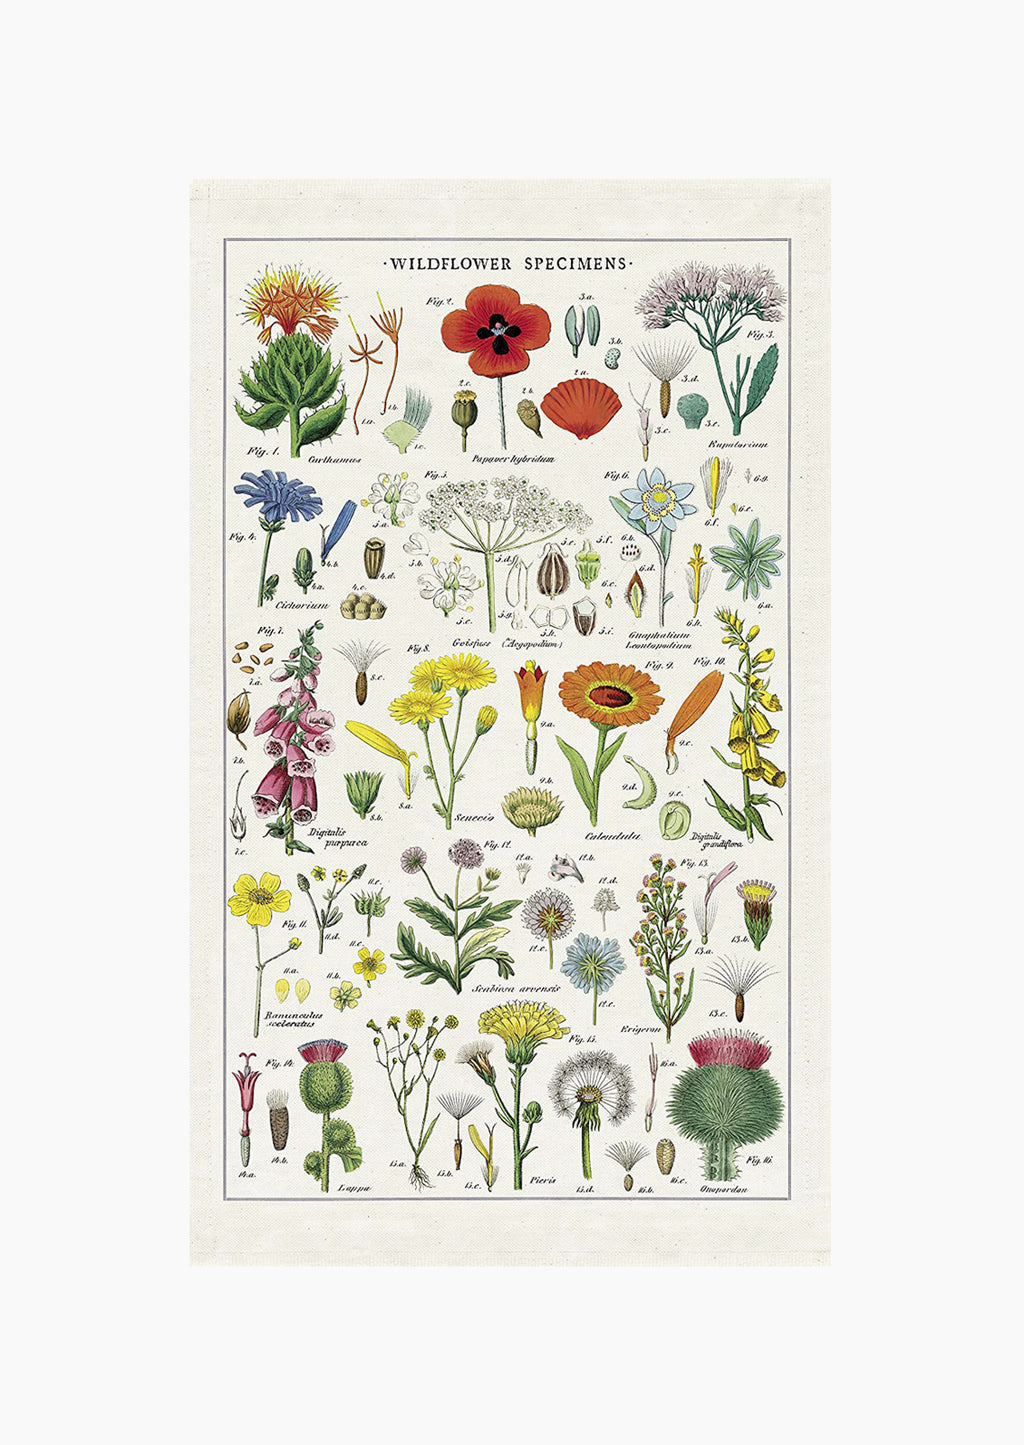 2: A cotton tea towel with botanical wildflower species printed in color.